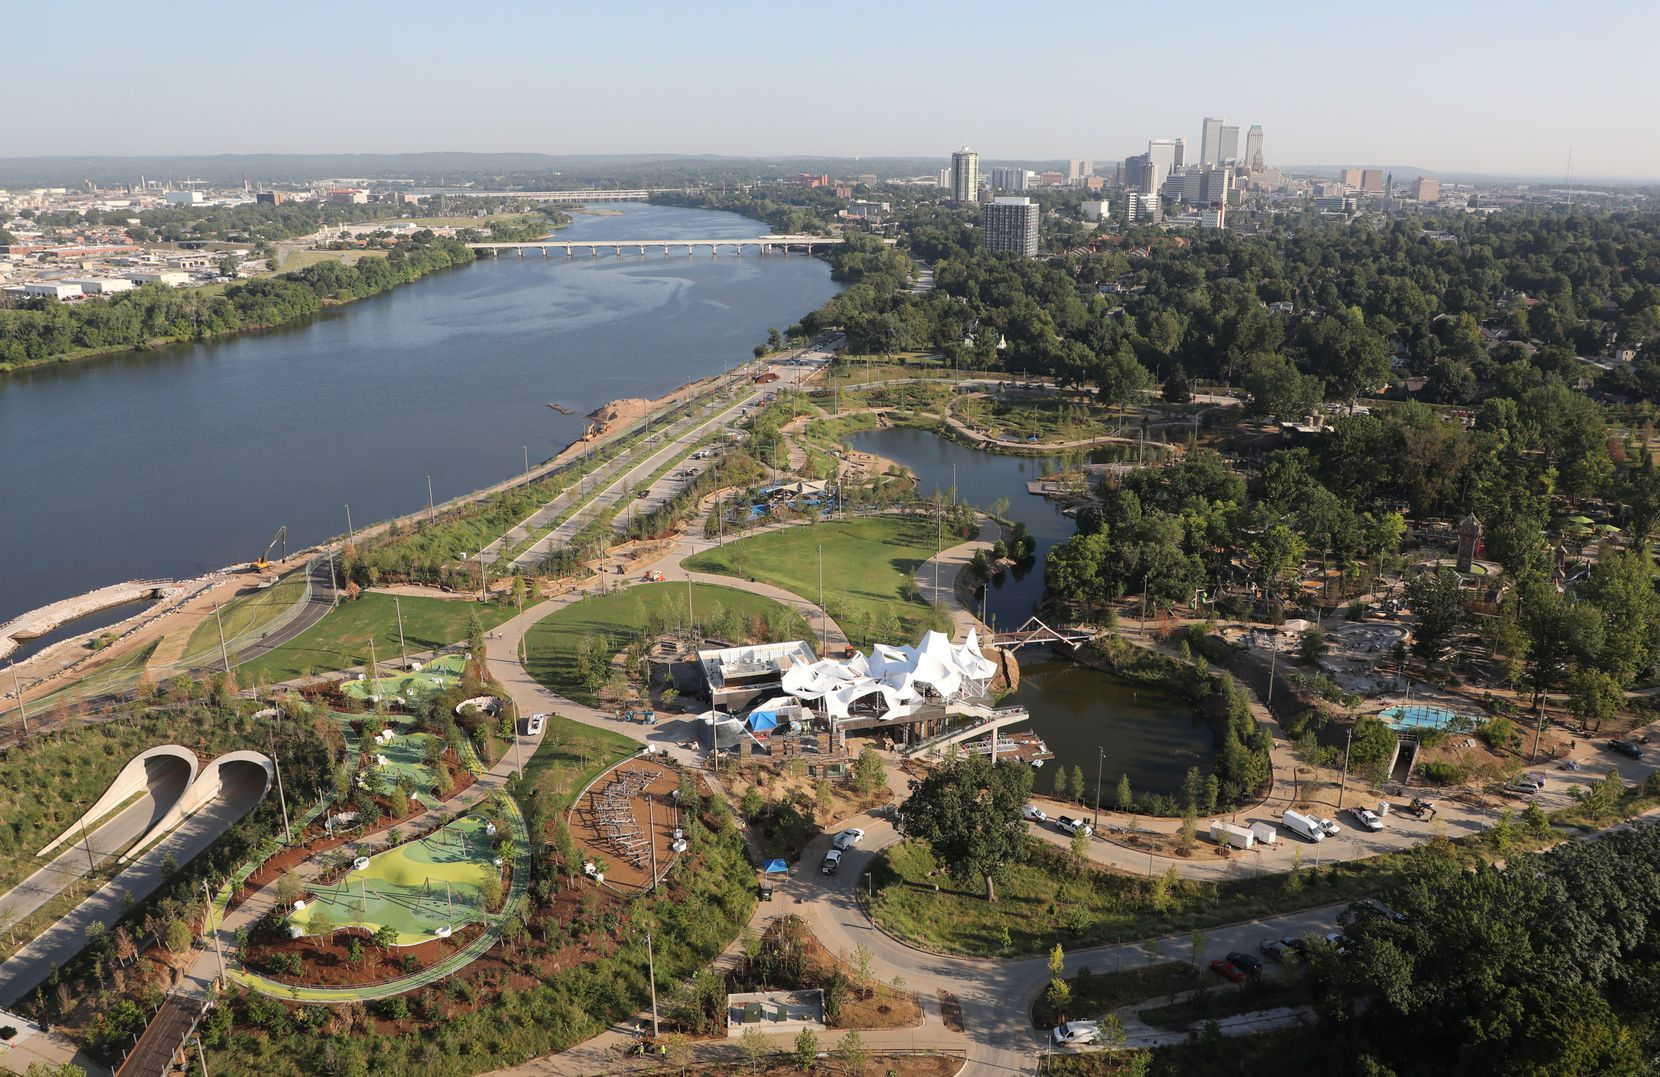 This 2018 aerial photo of Gathering Place, which runs along the Arkansas River, shows the Tulsa skyline in the background.